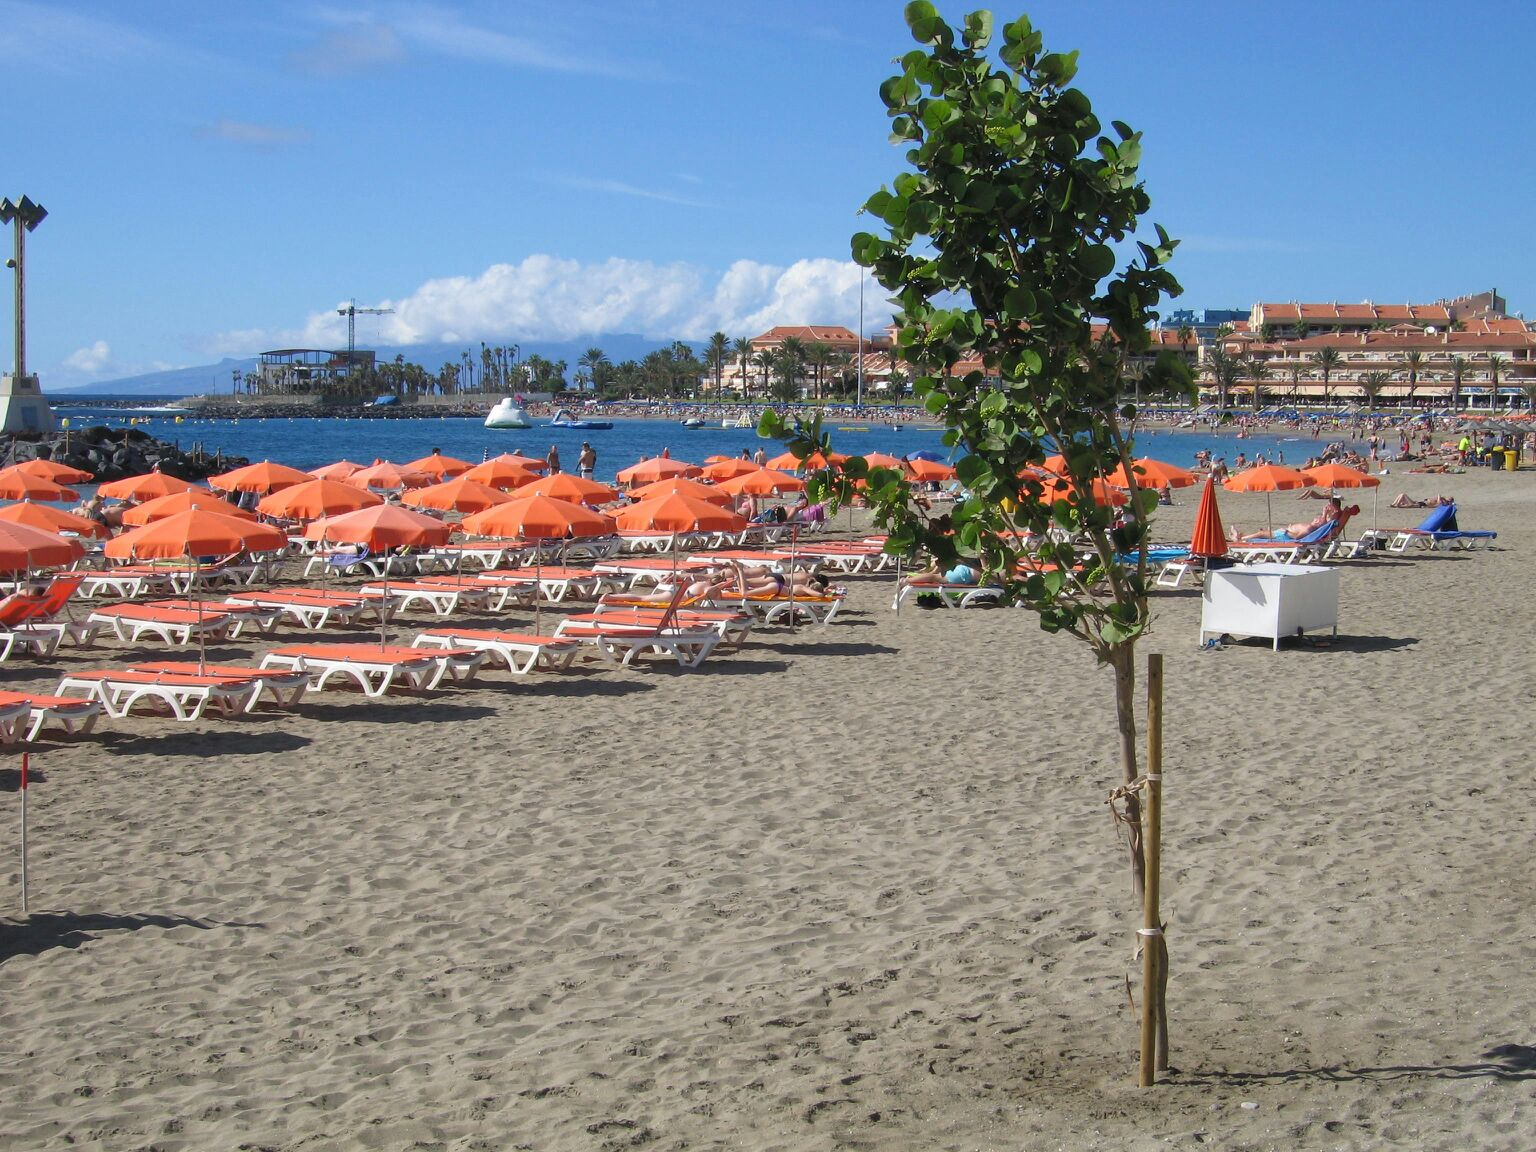 Playa Vistas beach Tenerife | White sand beaches in Tenerife